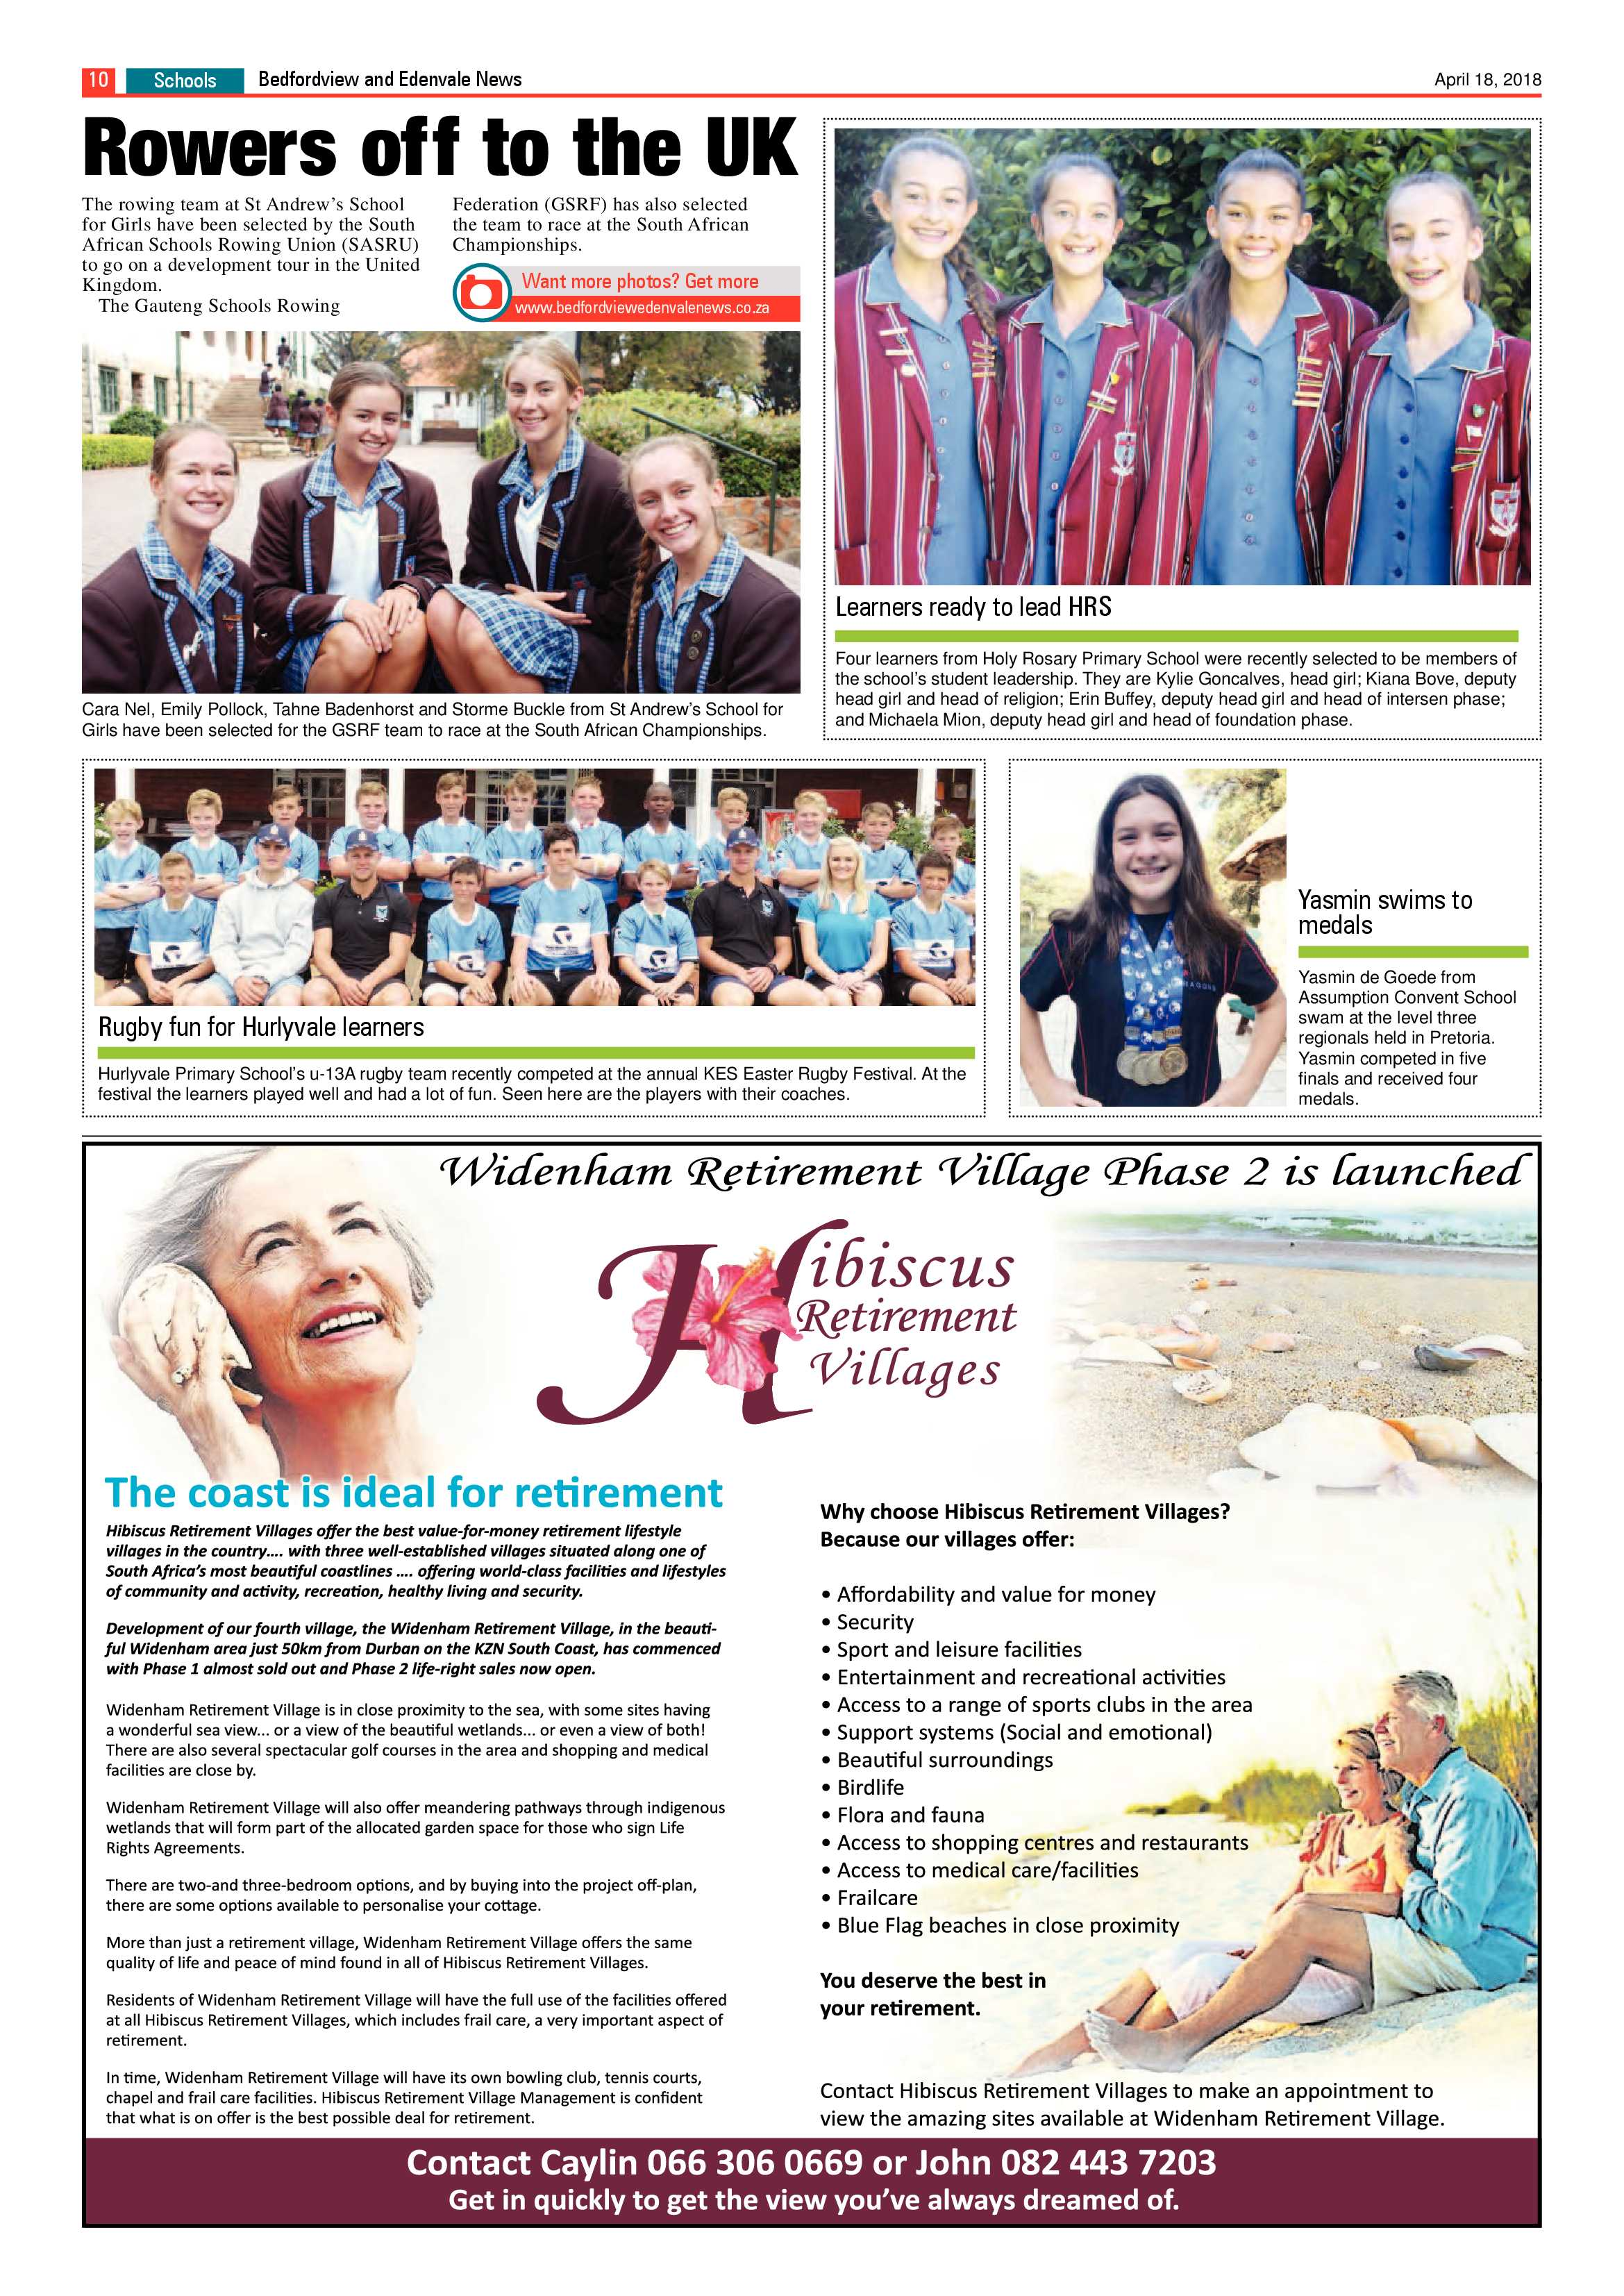 Bedfordview and Edenvale News 18 April 2018 | Bedfordview